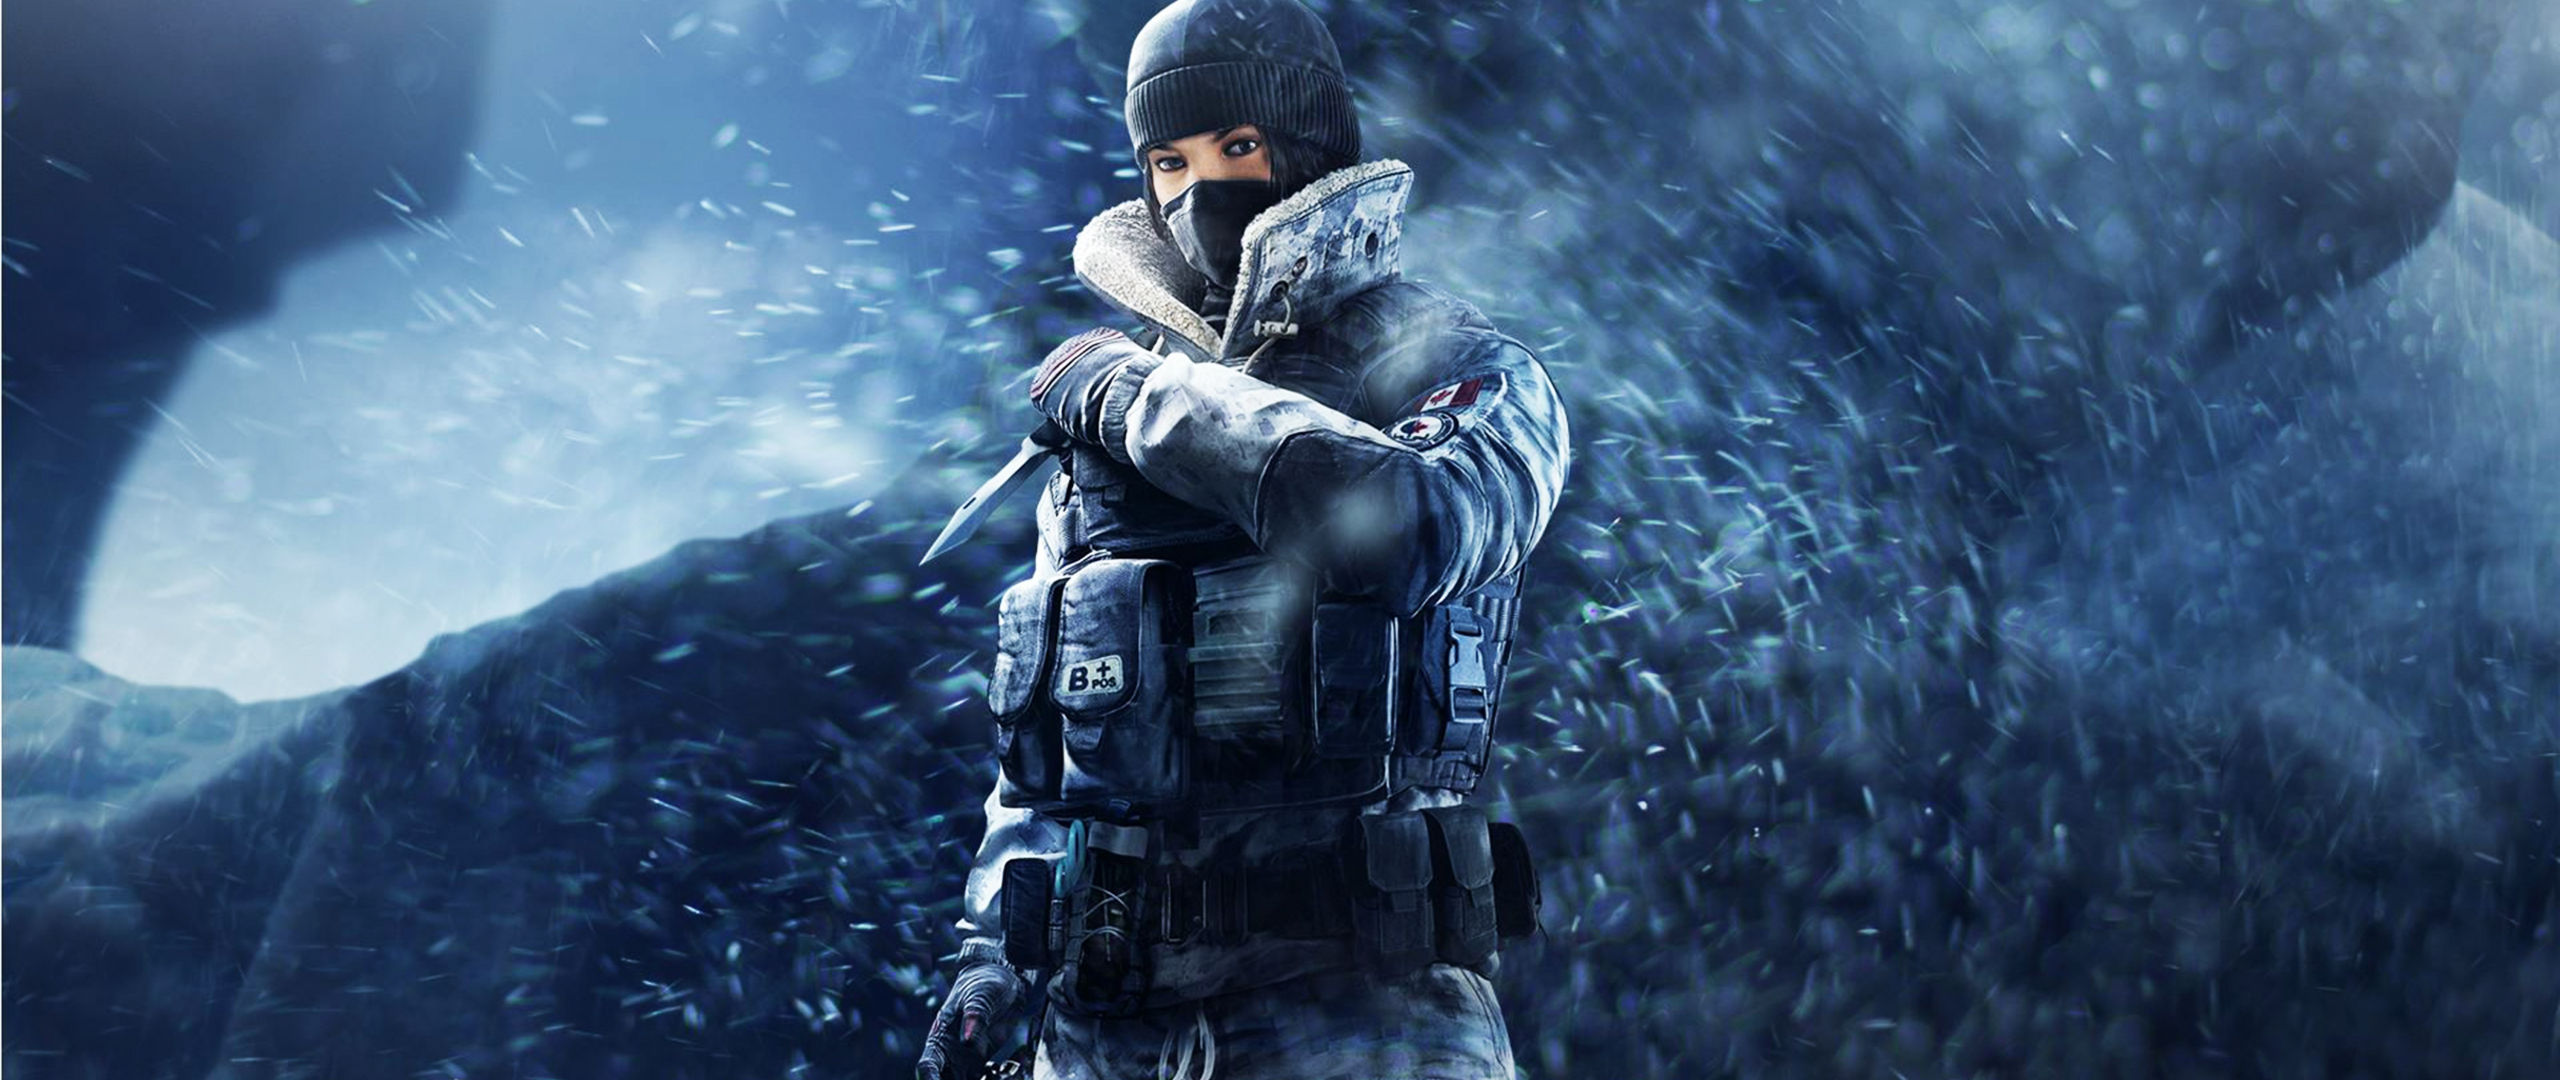 Tom Clancy's Rainbow Six Siege, girl soldier, frost, game, 2560x1080 wallpaper